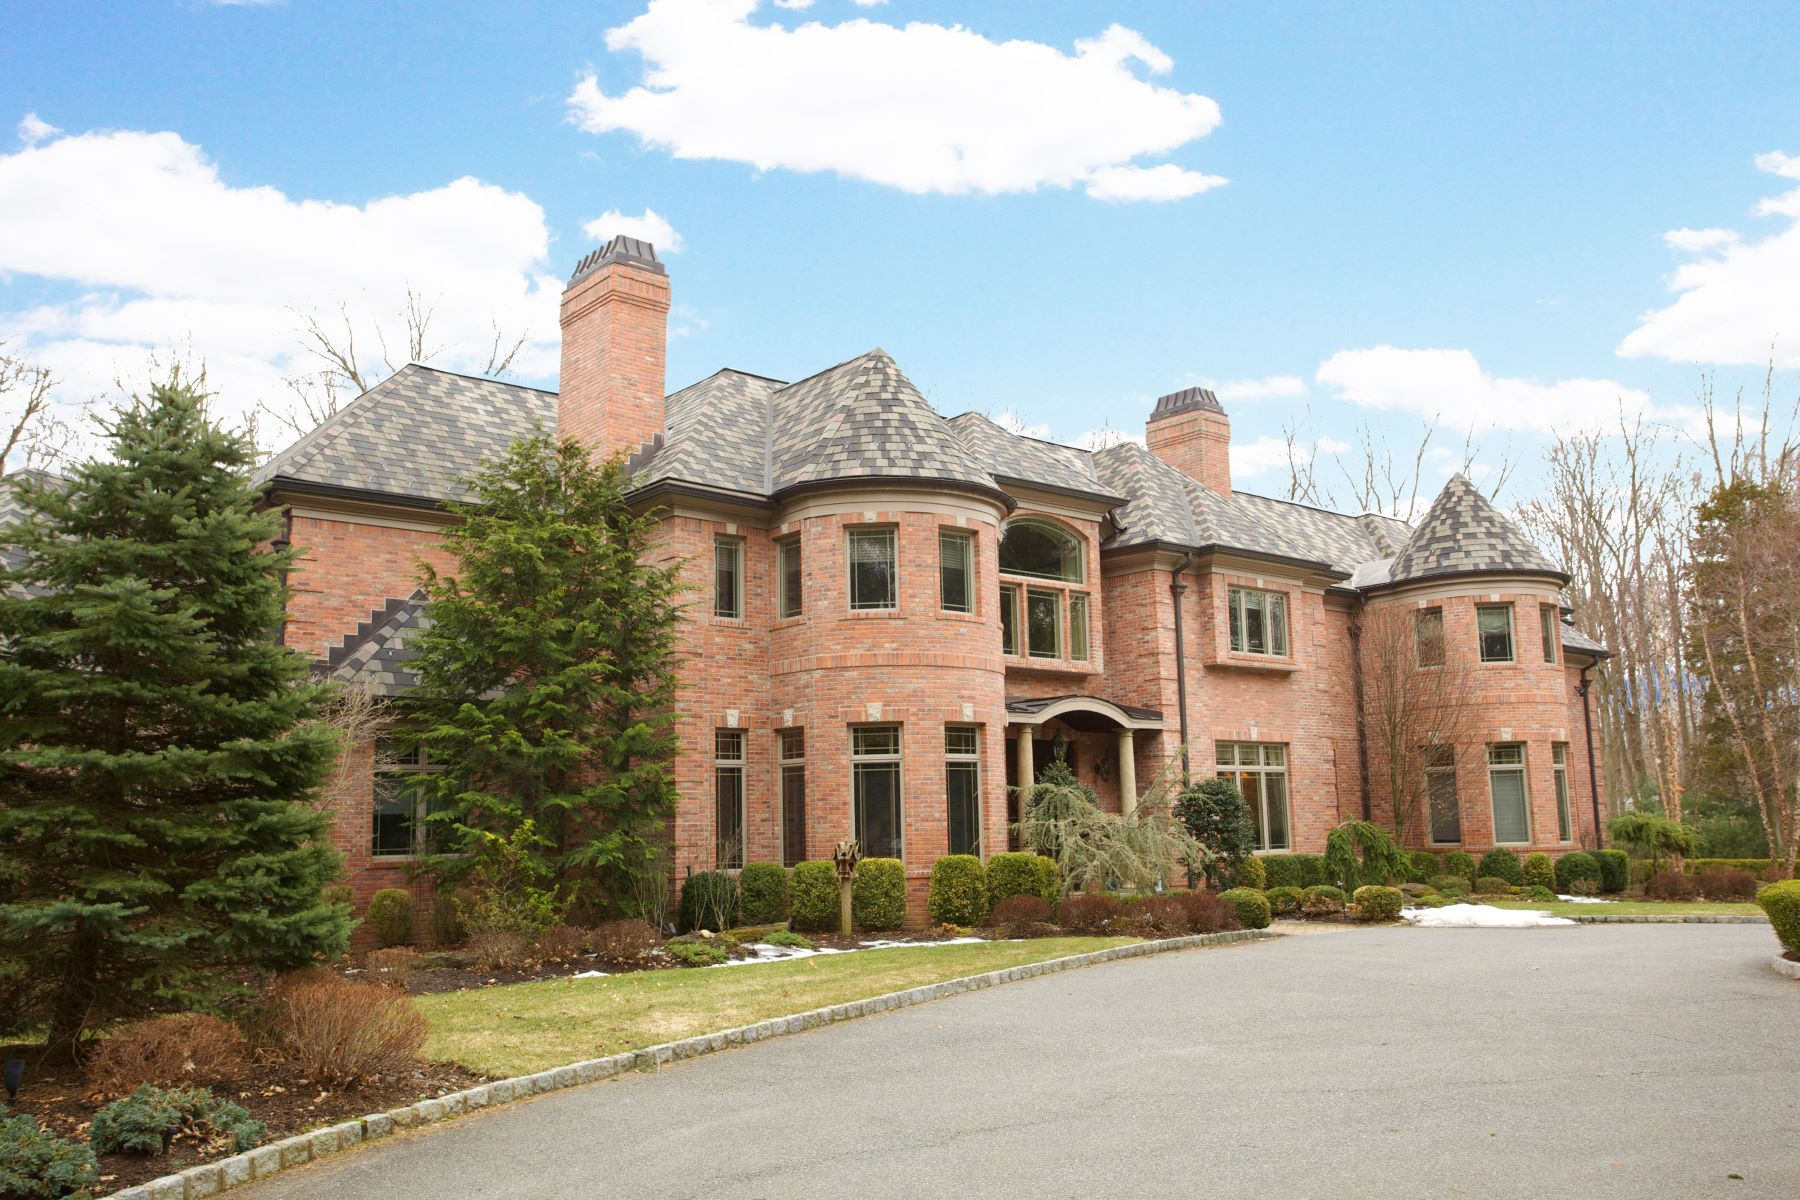 Maison unifamiliale pour l Vente à Grand Brick Manor 7 Bayberry Drive Saddle River, New Jersey 07458 États-Unis